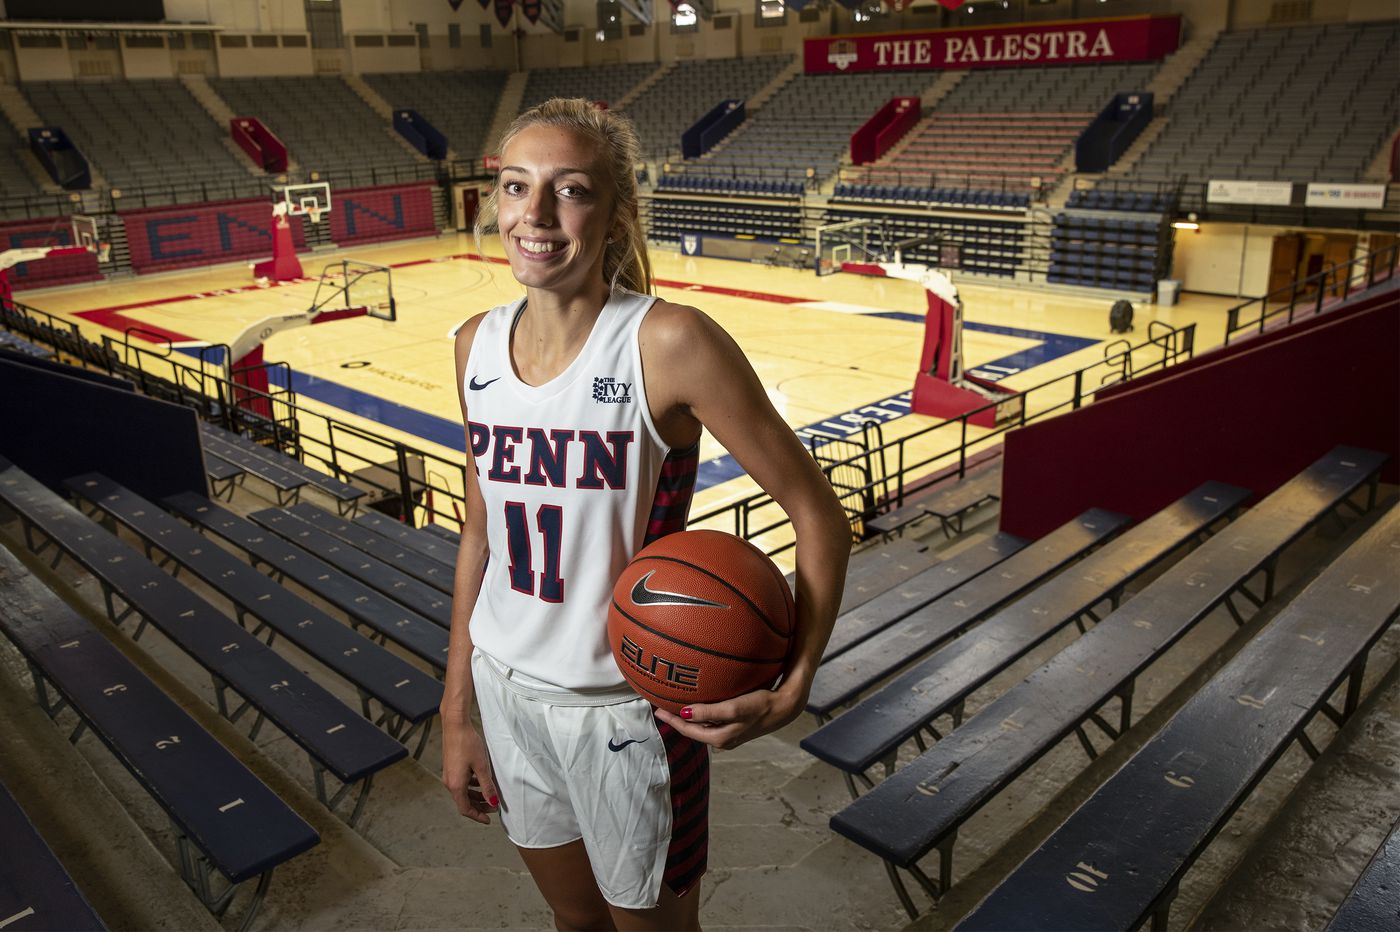 Kendall Grasela embraces leadership role for Penn women's team | College basketball preview